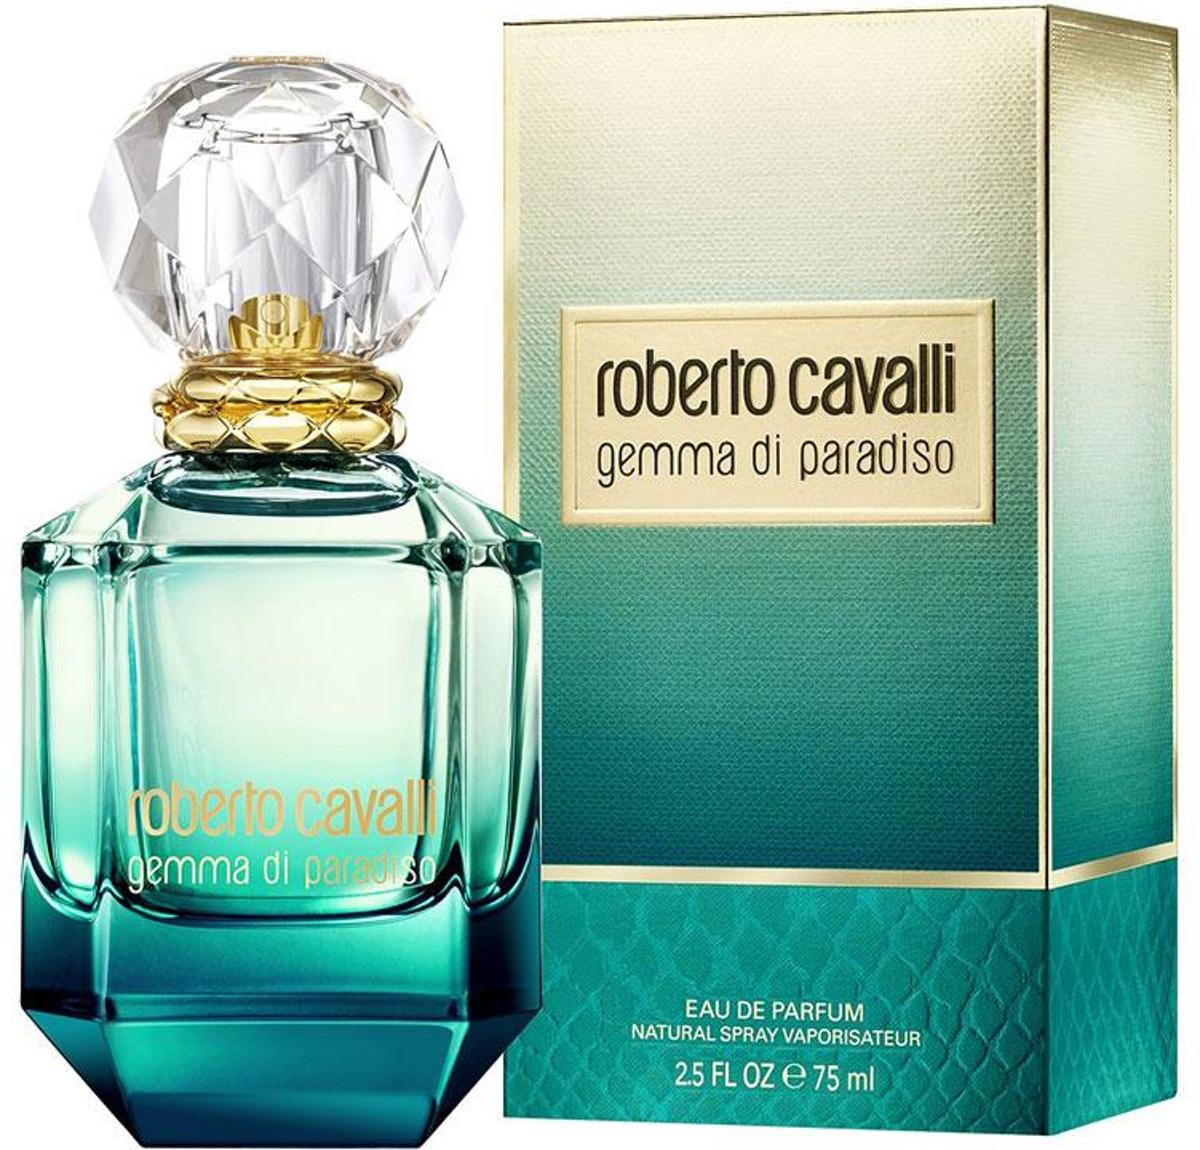 Roberto Cavalli Gemma Di Paradiso Edp Spray 75ml